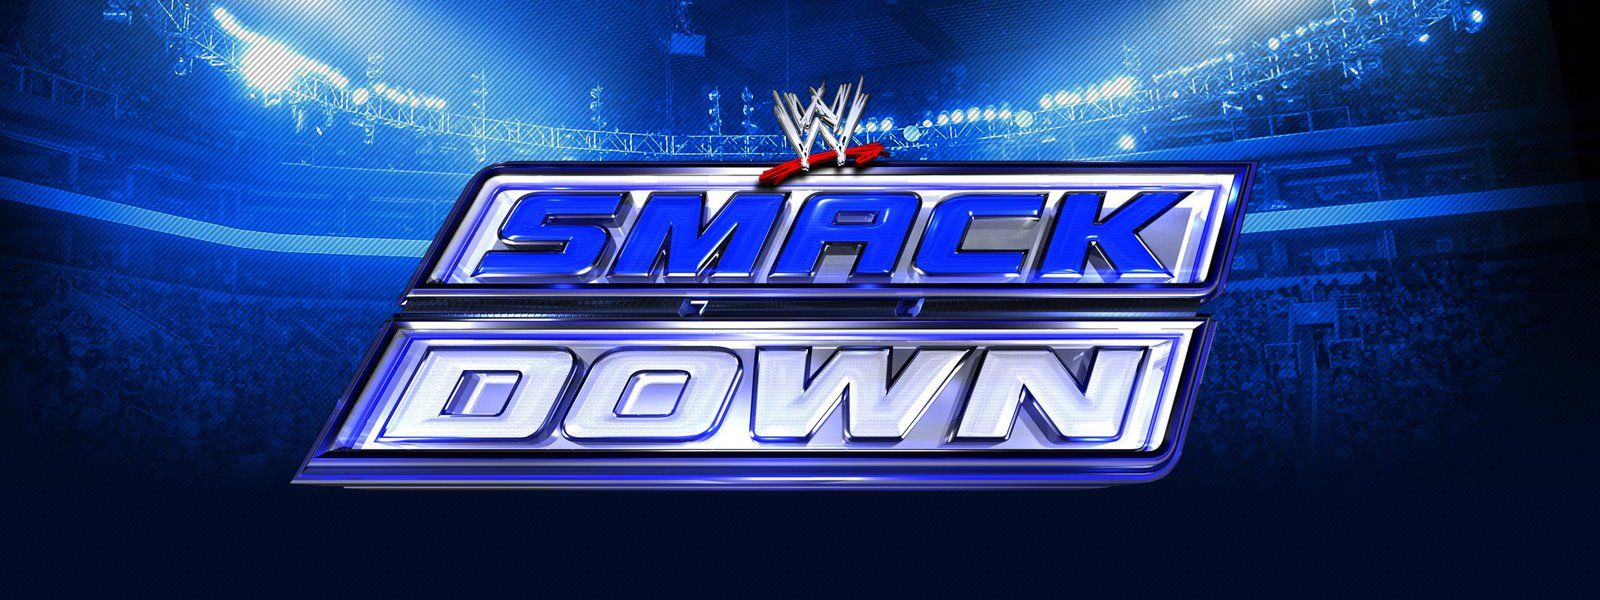 Wwe Smackdown 30Th June 2016 Hdtv 200Mb Free Download -1805